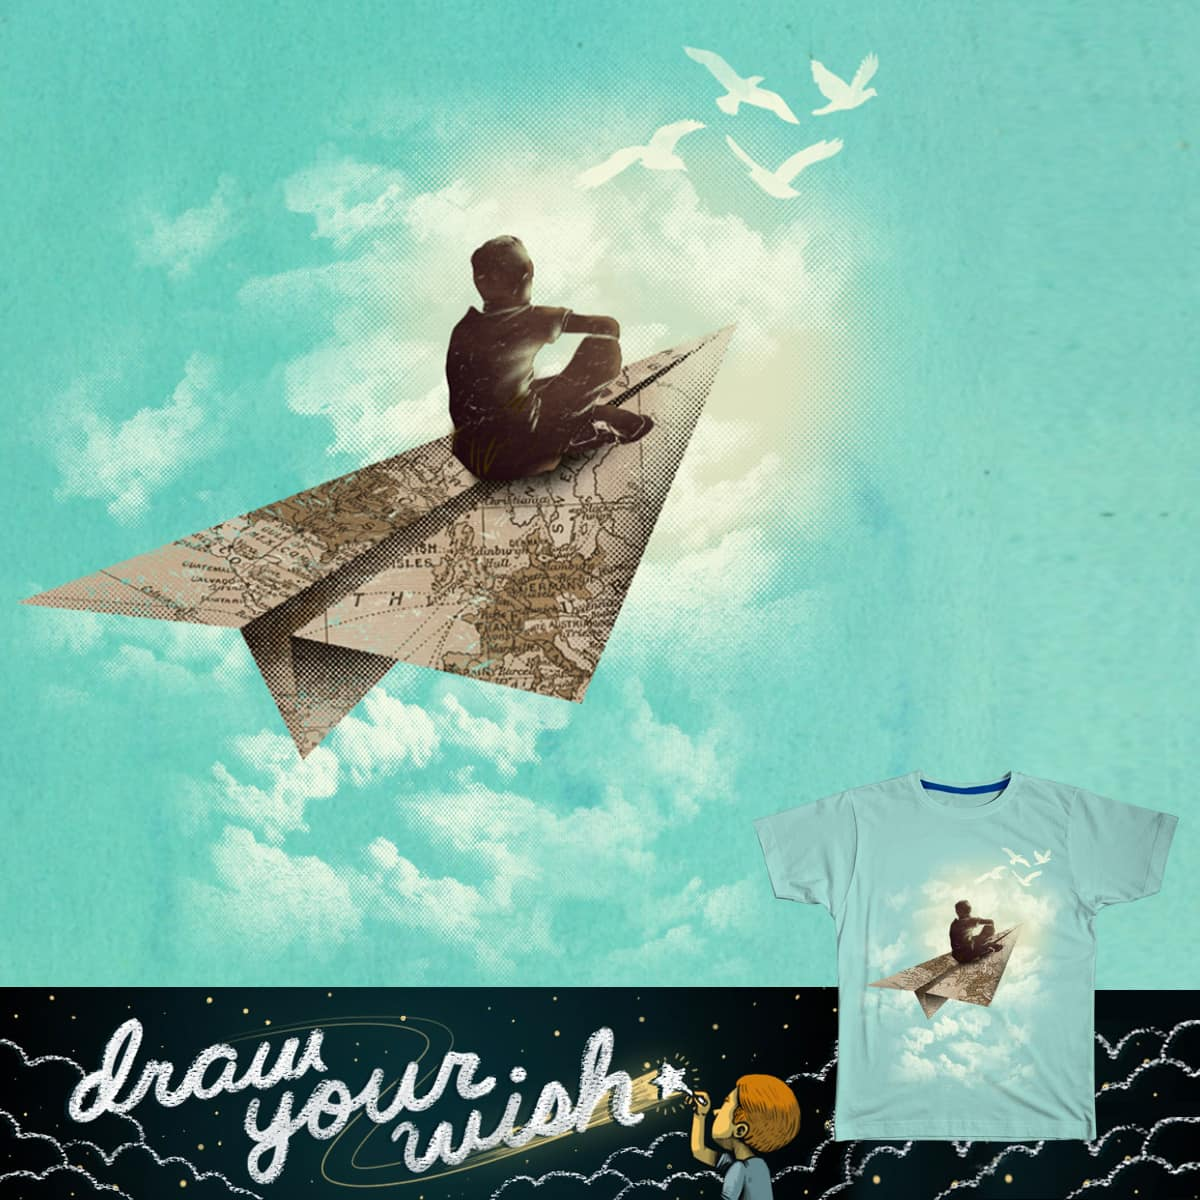 I Wish I Could Fly by dandingeroz on Threadless